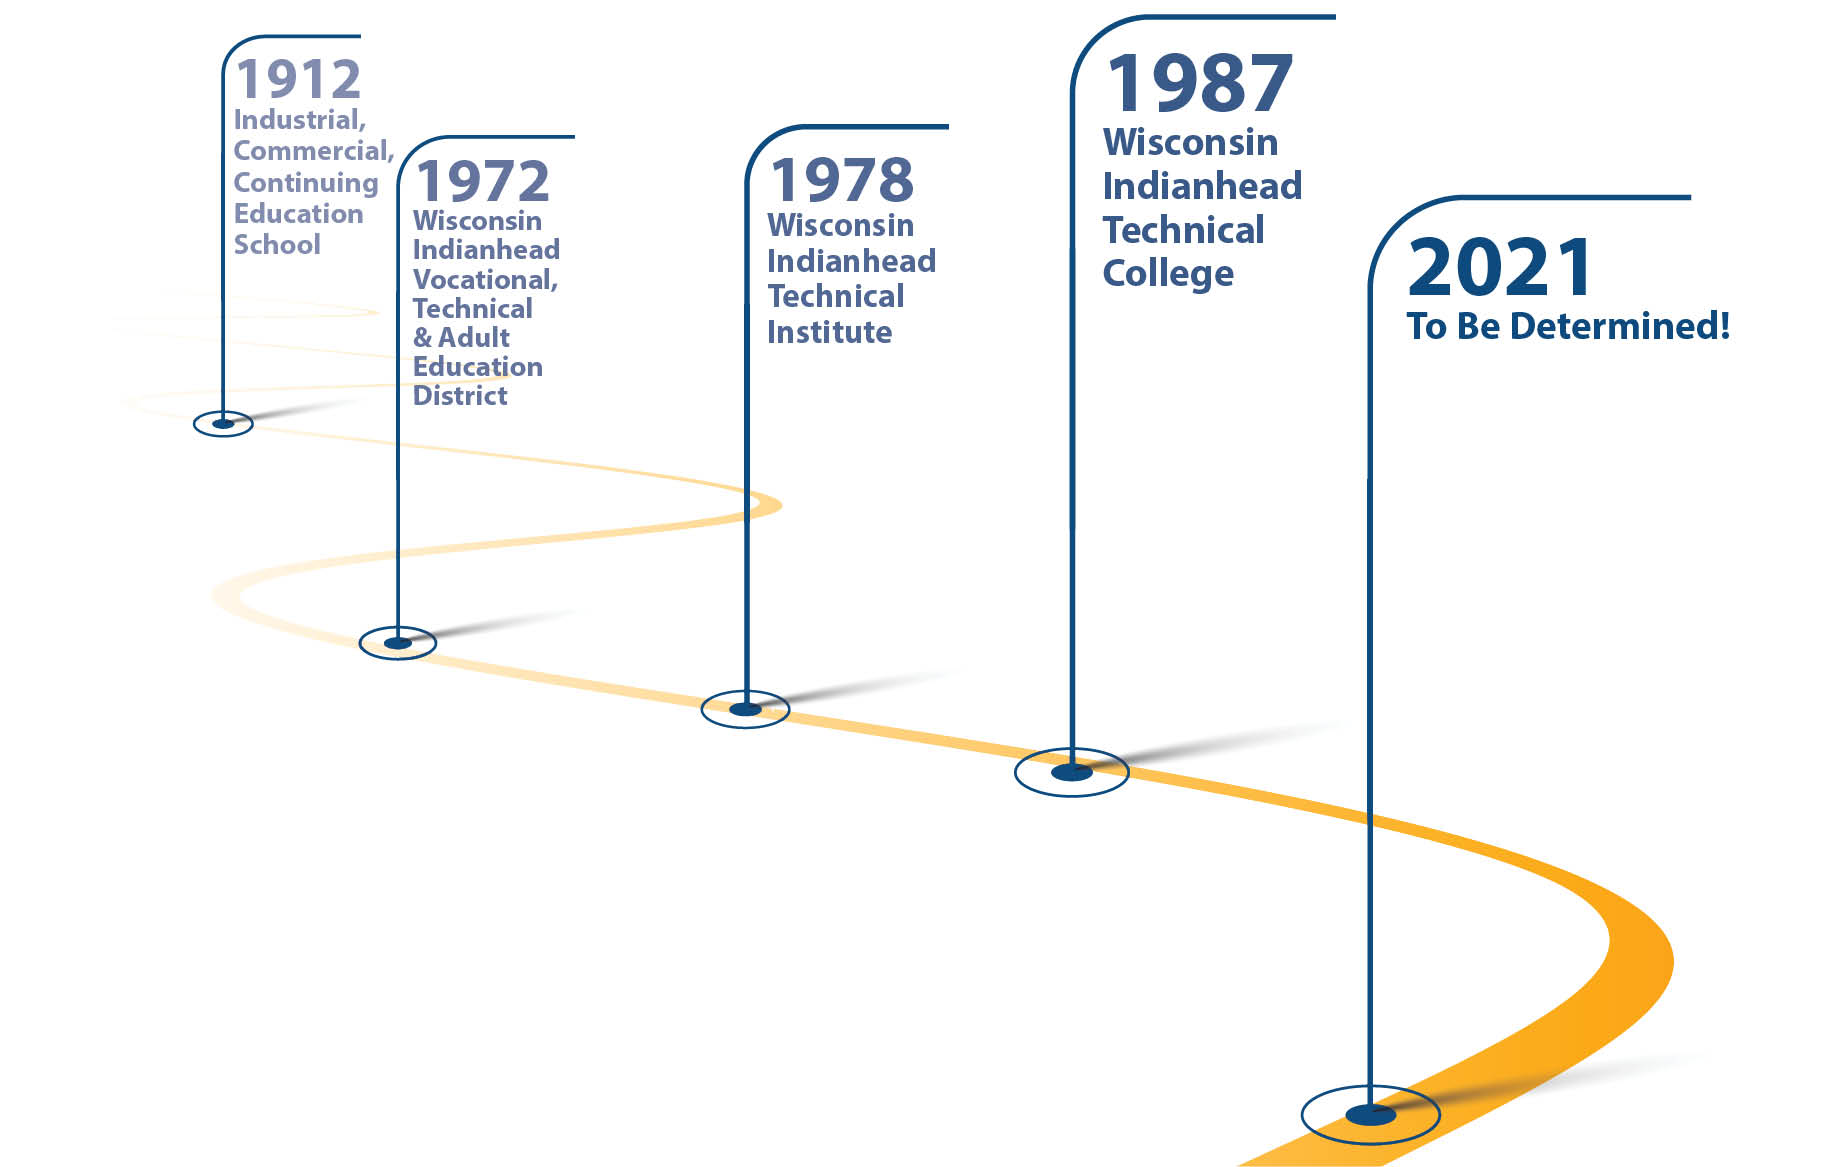 A timeline that shows the history of WITC names